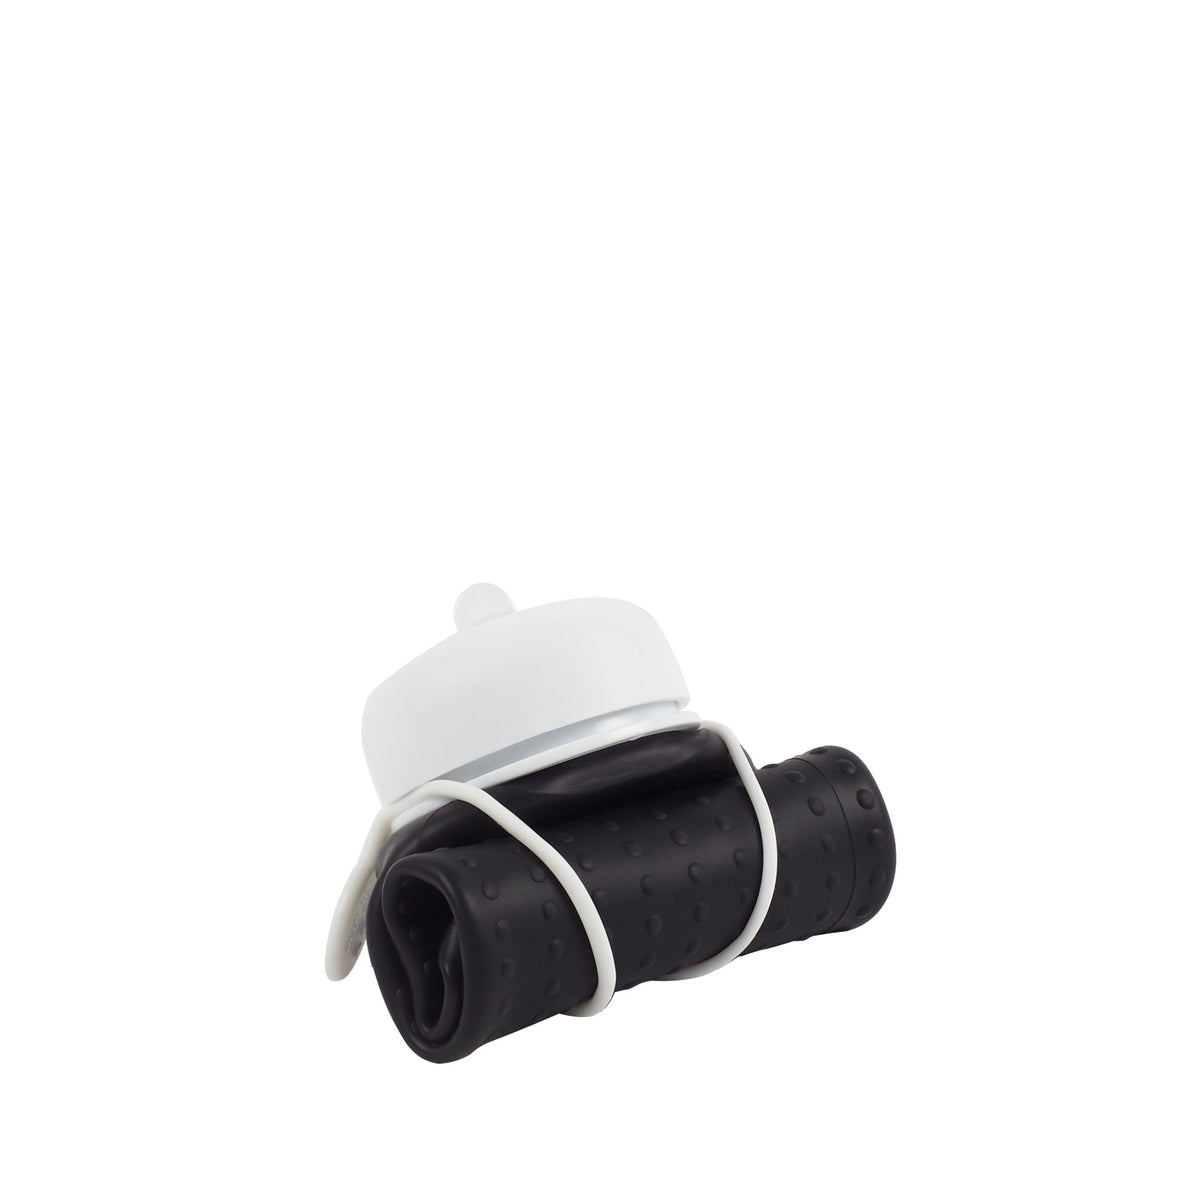 Rolla Bottle - Black, White Lid + White Strap - Rolled